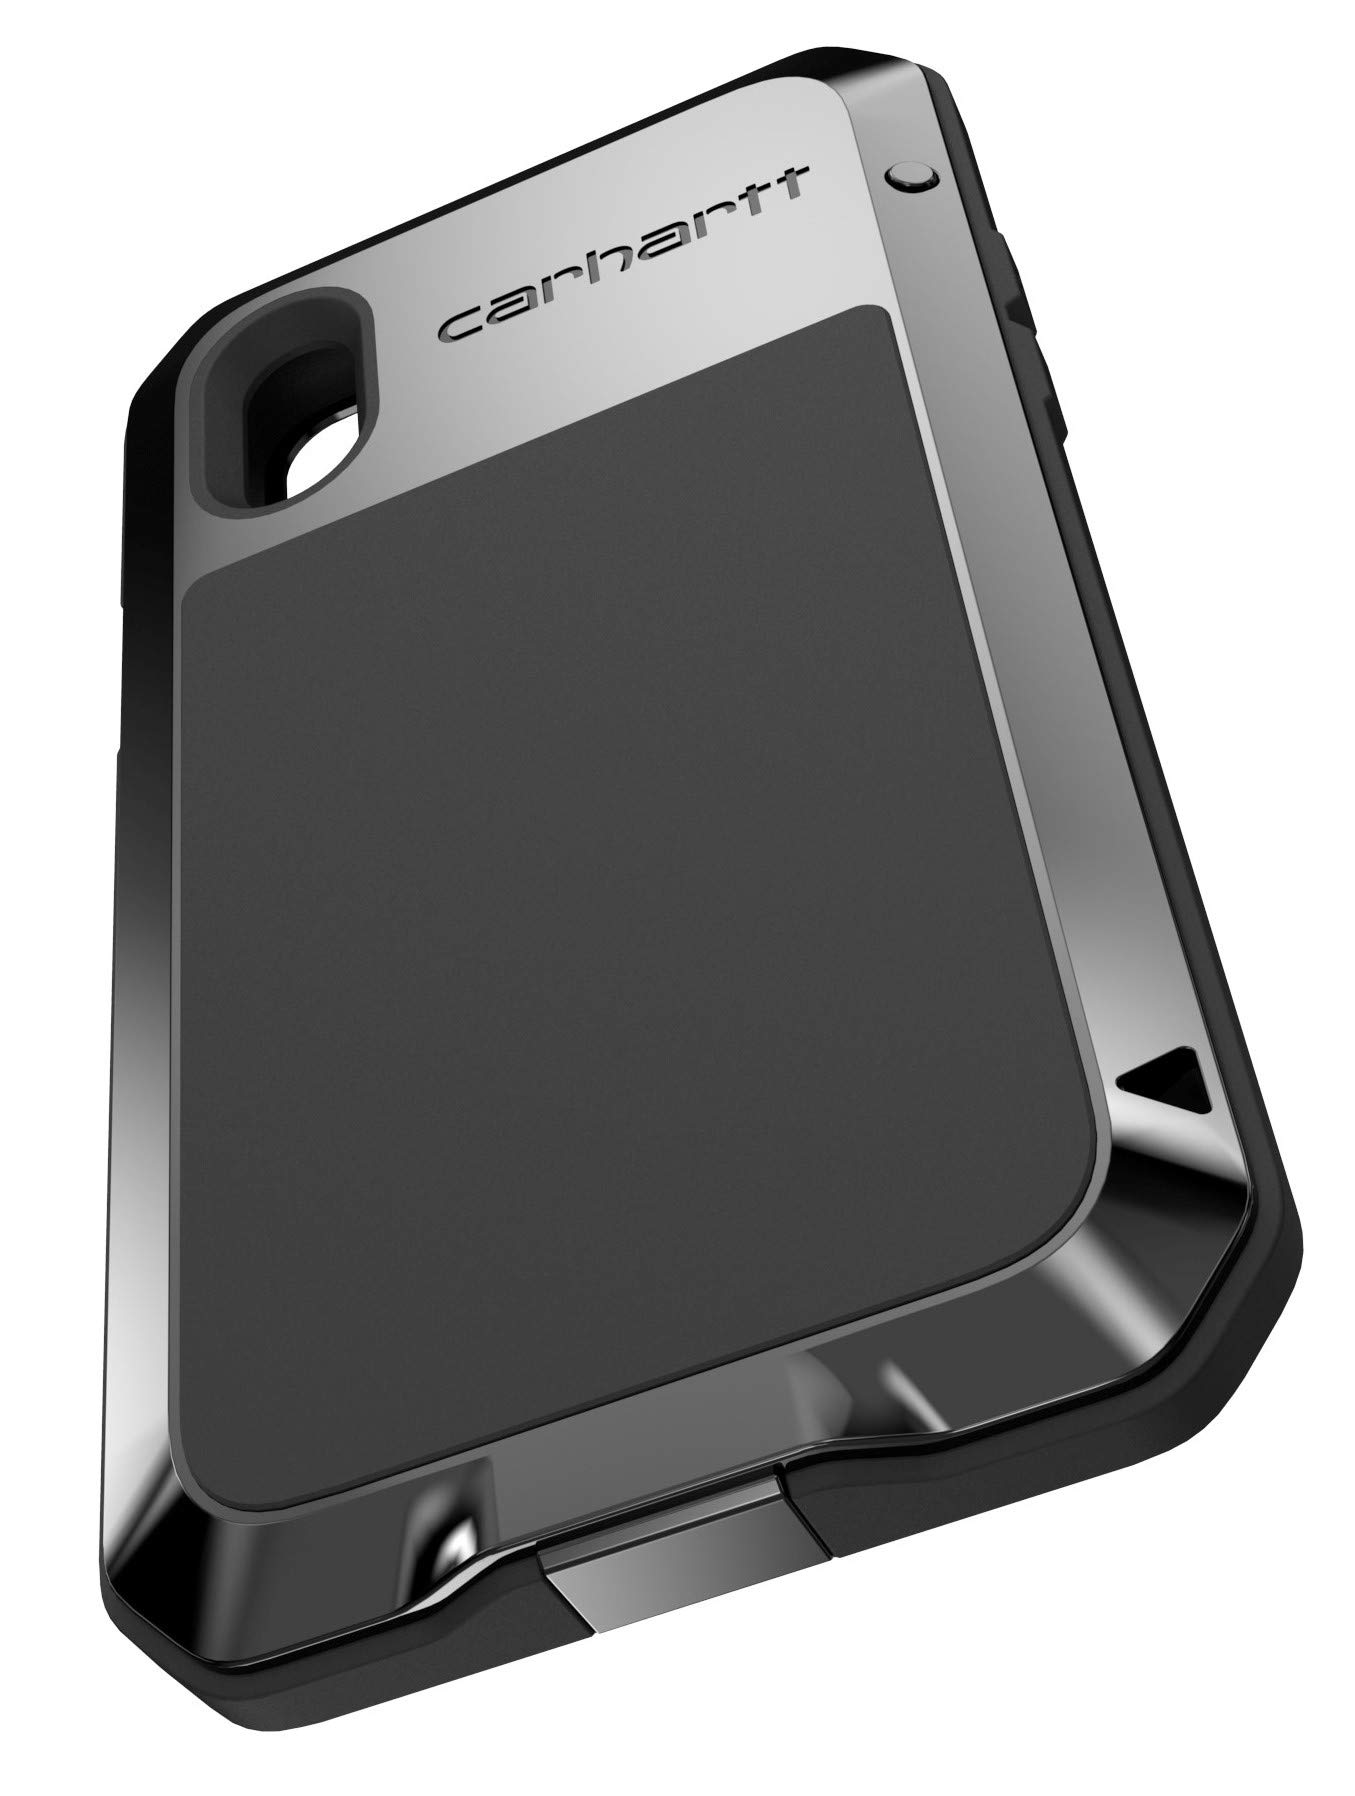 Carhartt RIG Case for iPhone Xs Max by Carhartt (Image #4)